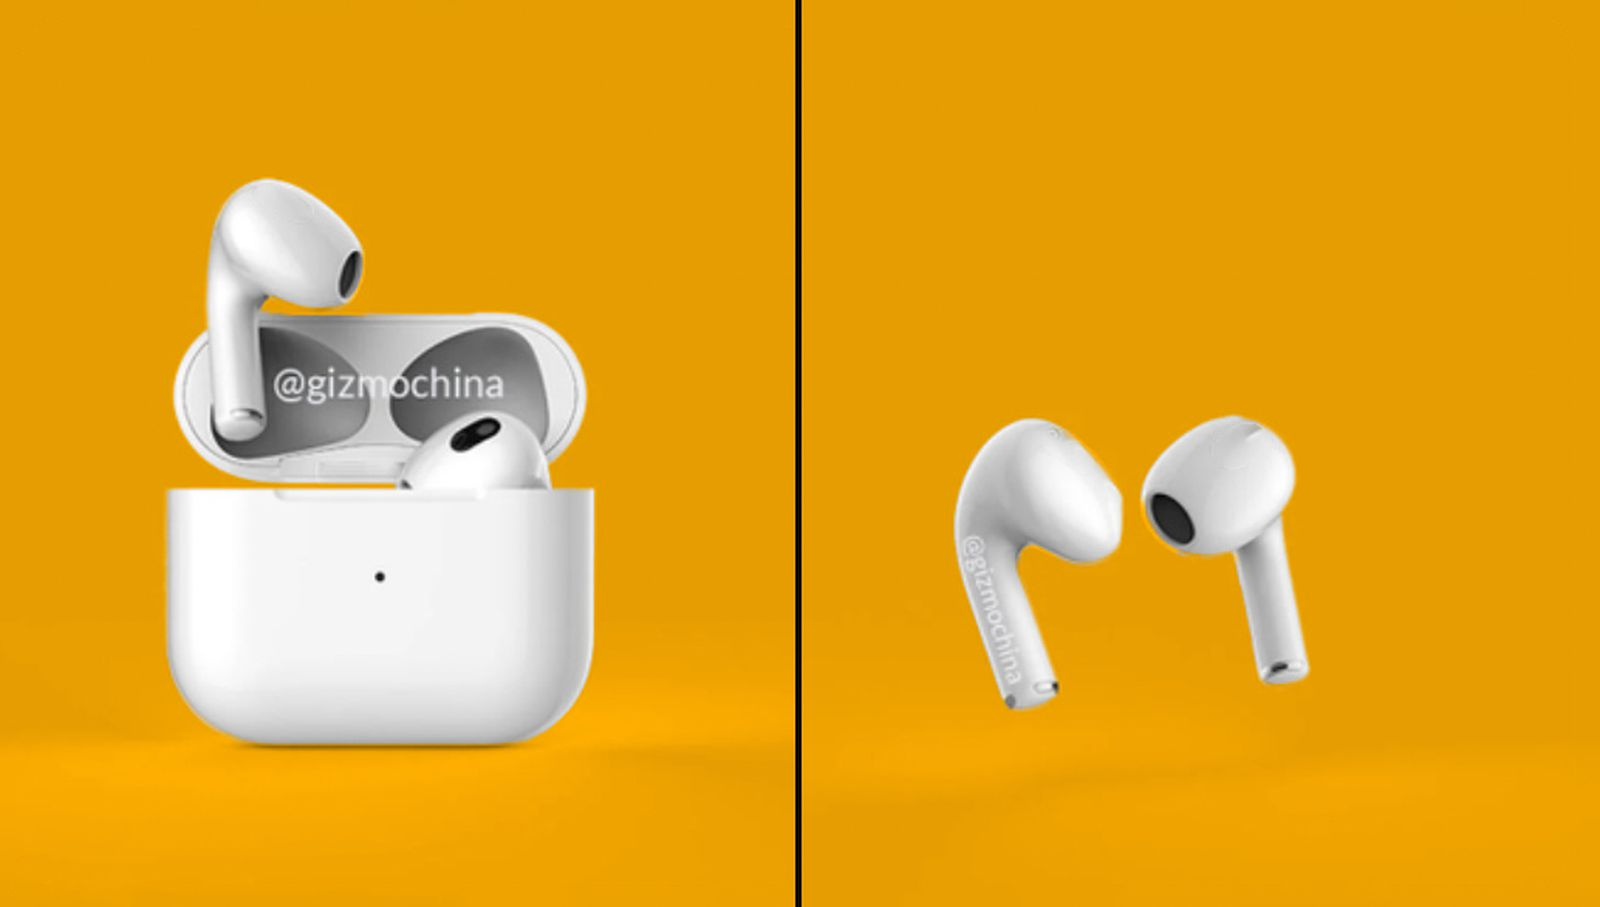 macrumors.com - Sami Fathi - AirPods 3 Rumored to Launch Alongside iPhone 13 at Expected September Event